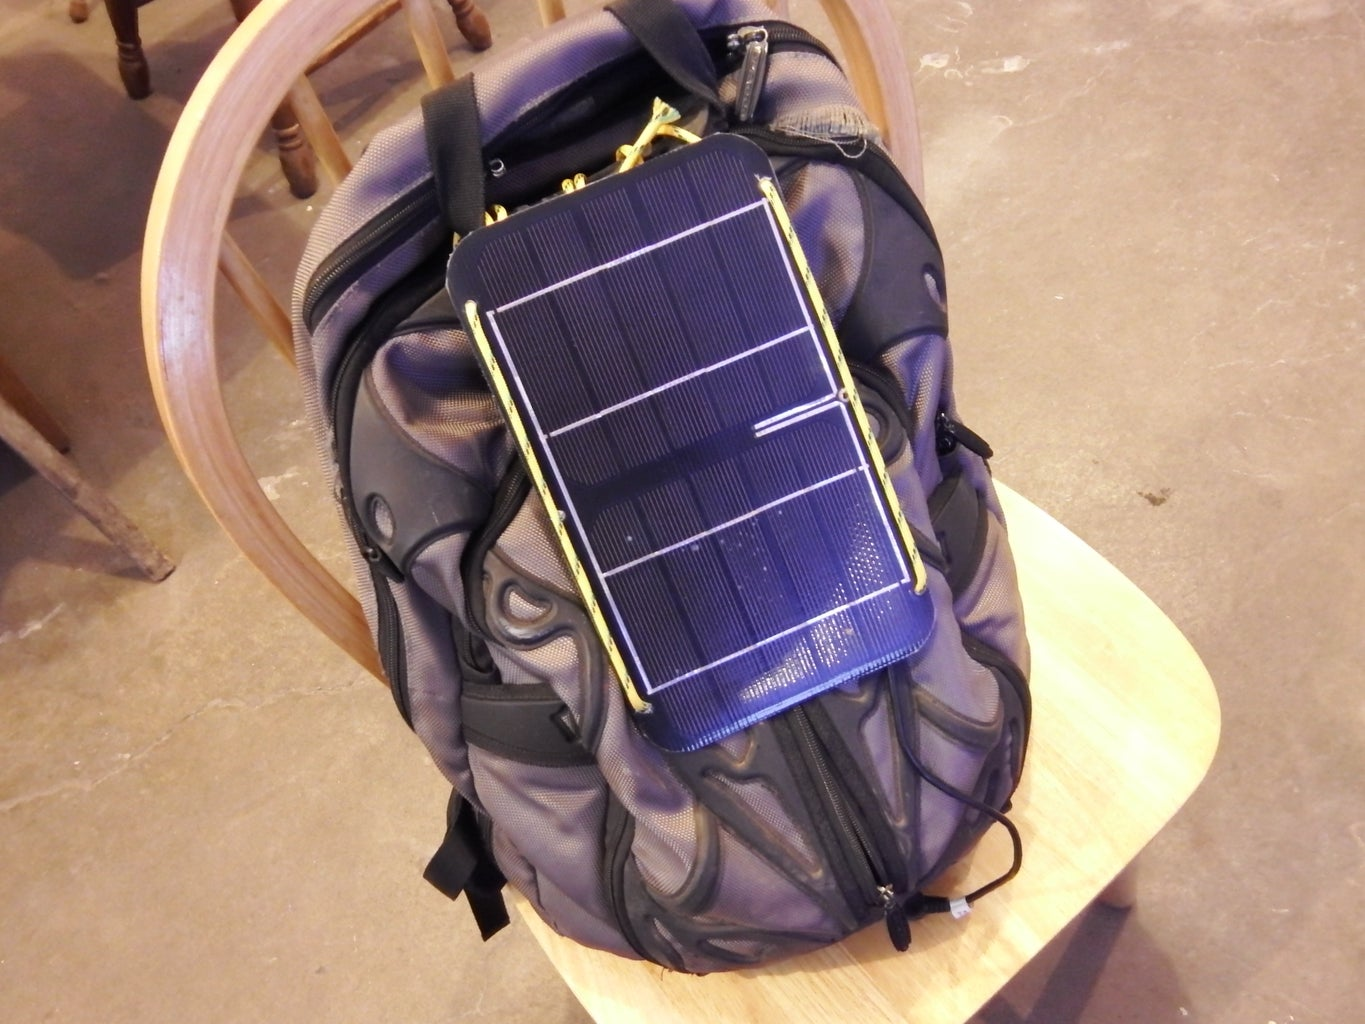 Attach the Solar Panel to the Backpack